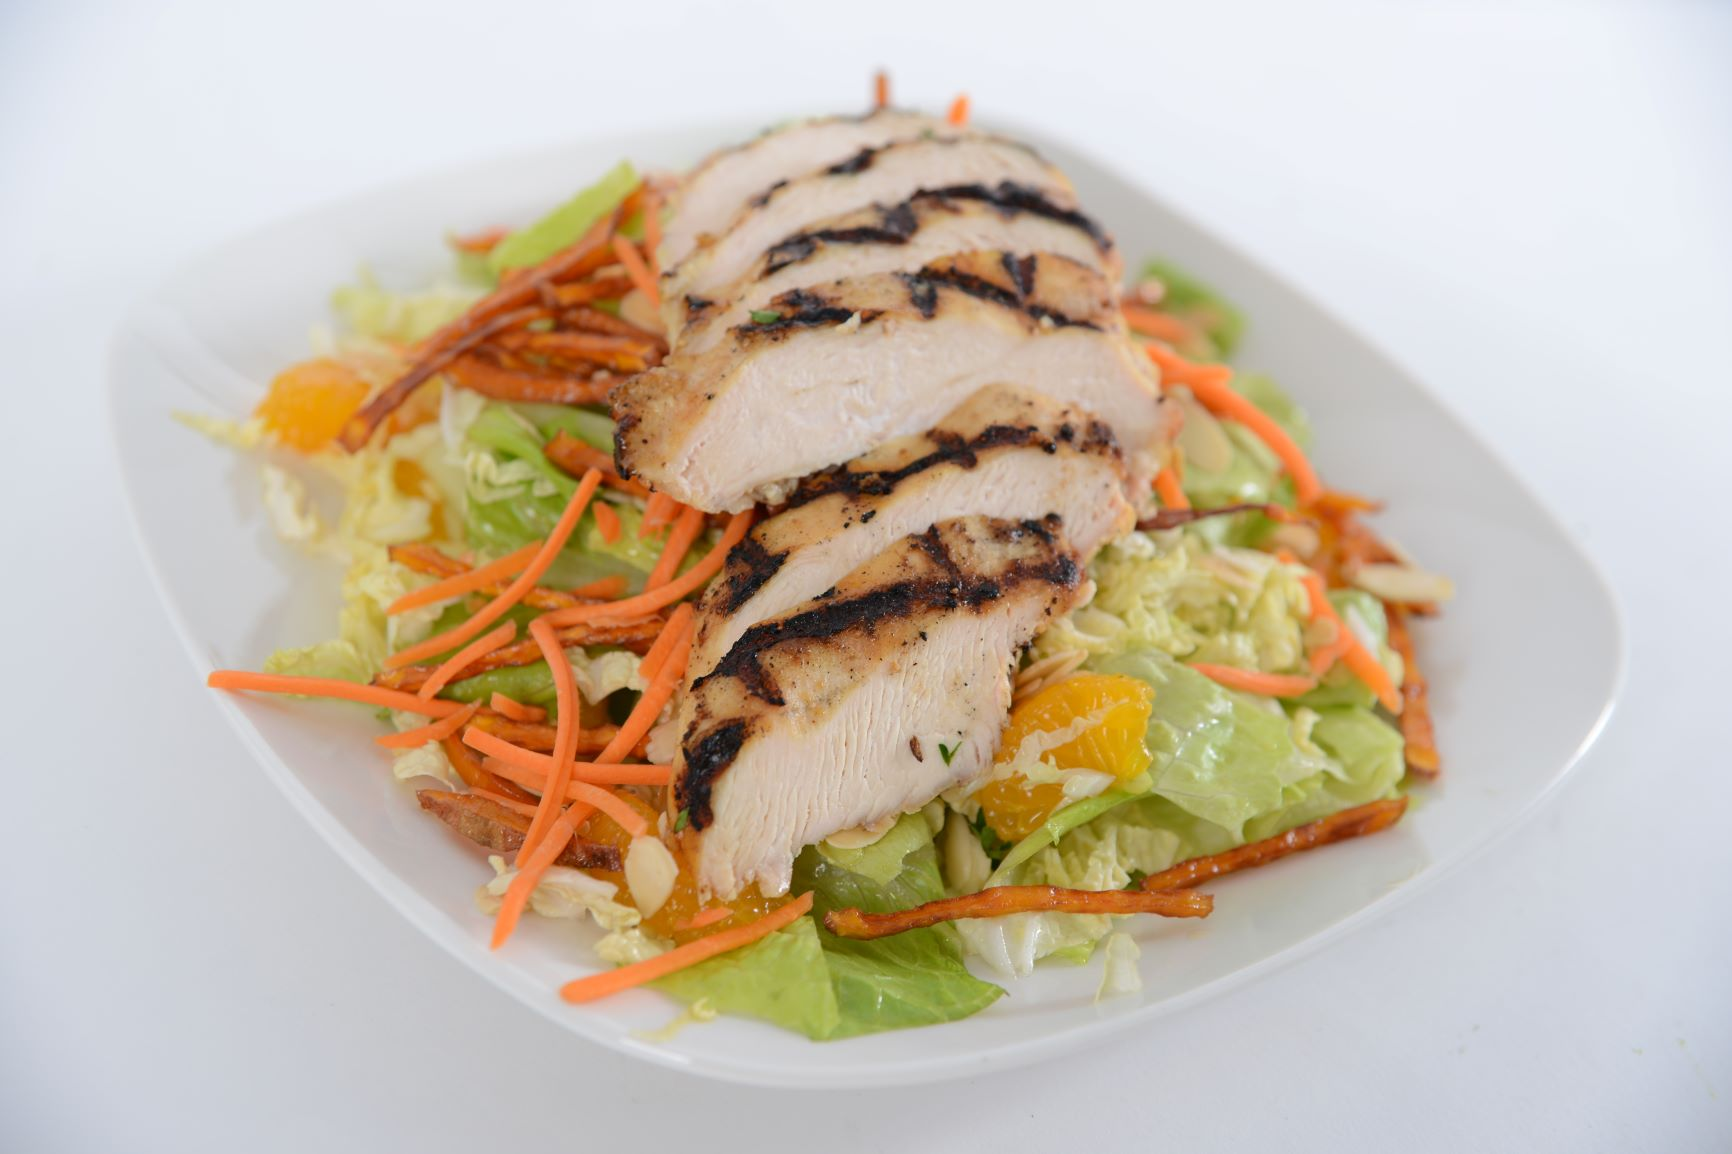 Mandarin Salad w/ Chicken Breast or Salmon (Thursday 7/9 Delivery)